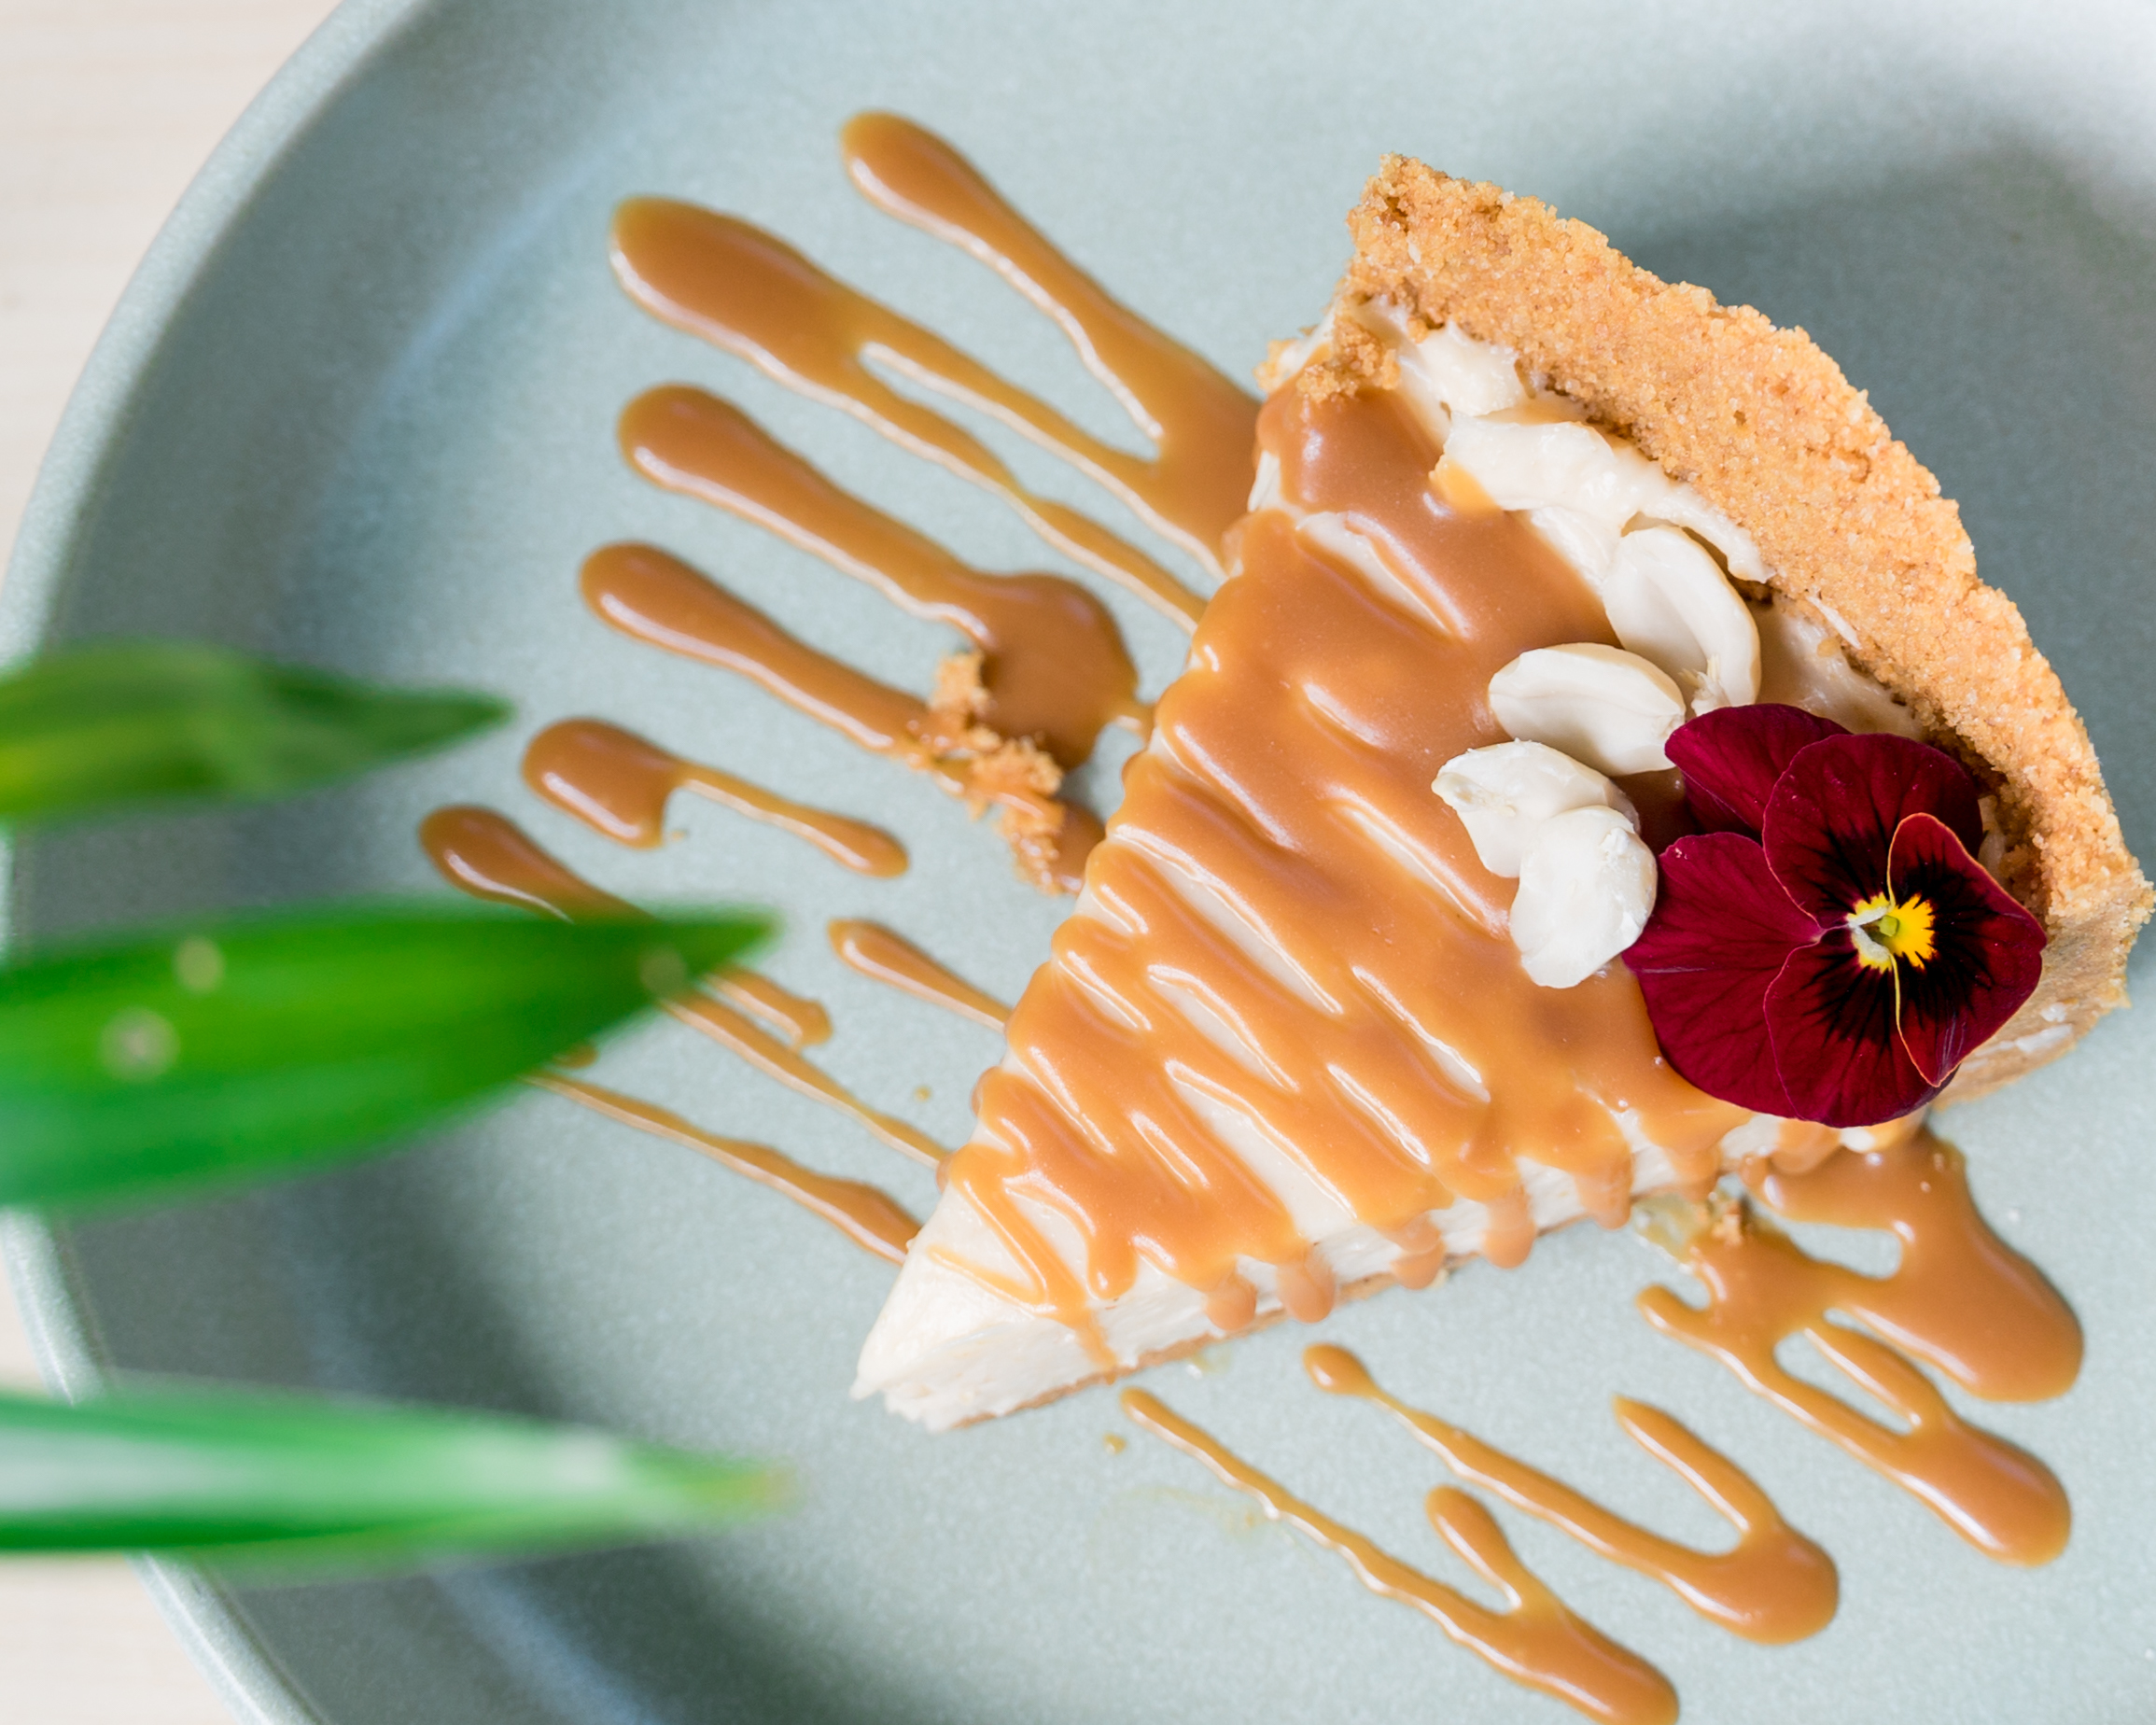 Cheesecake de manteiga de amendoim do Camélia Brunch Garden